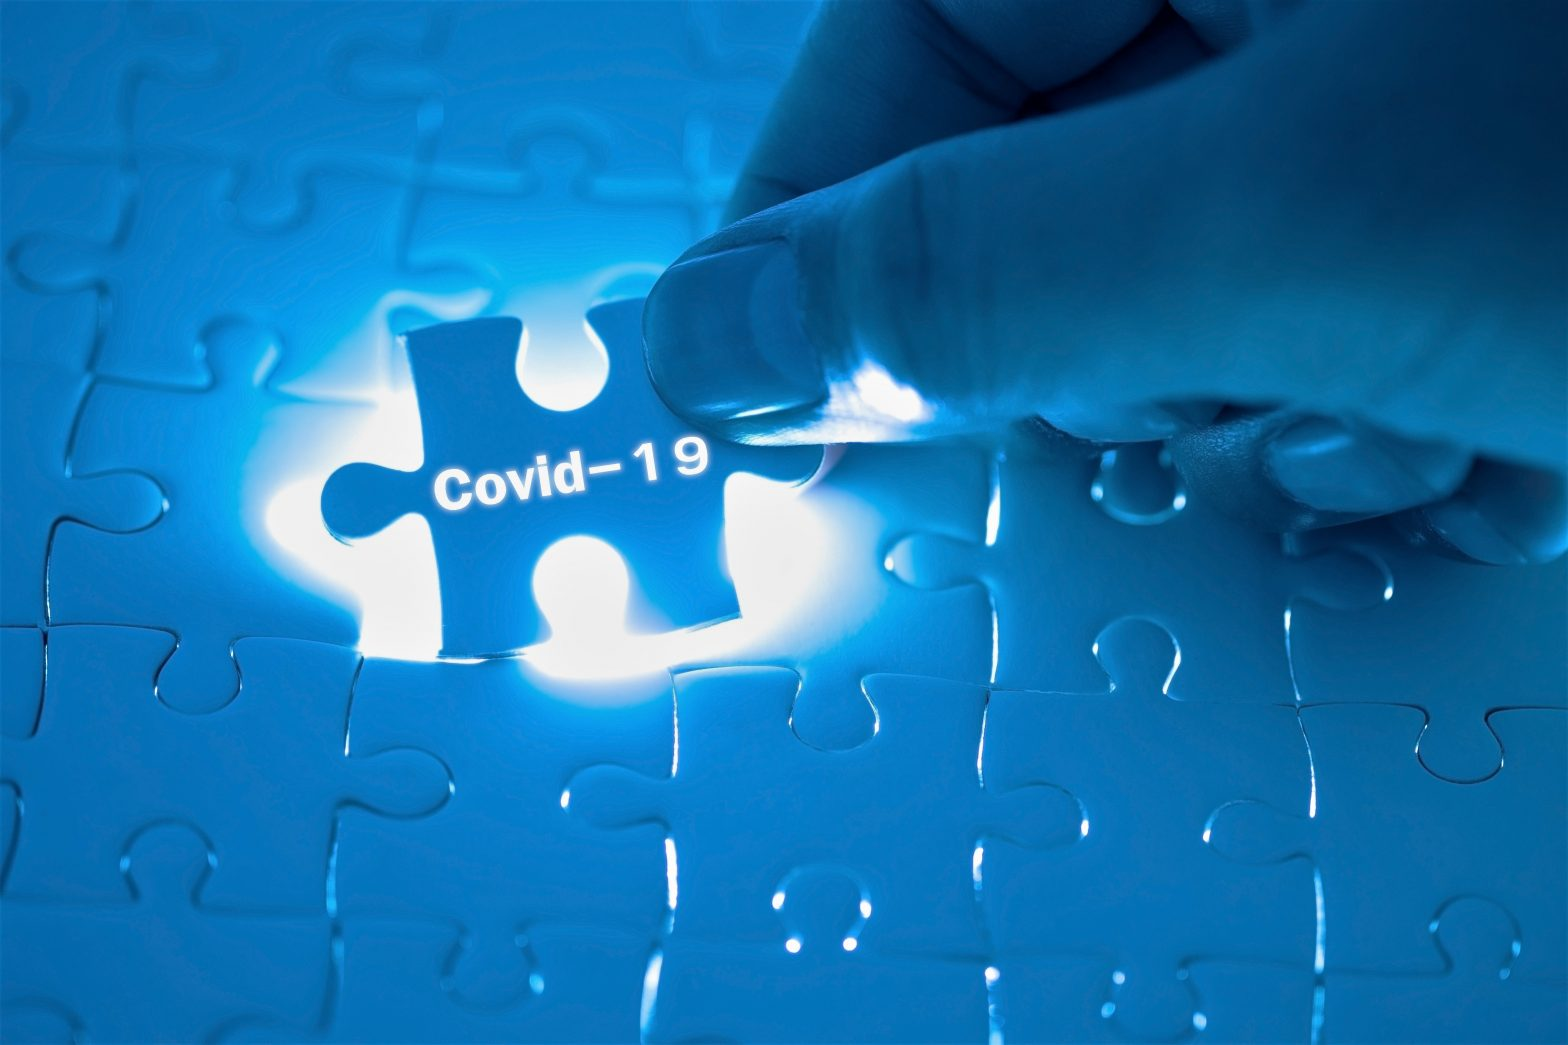 Remdesivir approved for Covid 19.  How effective is it?